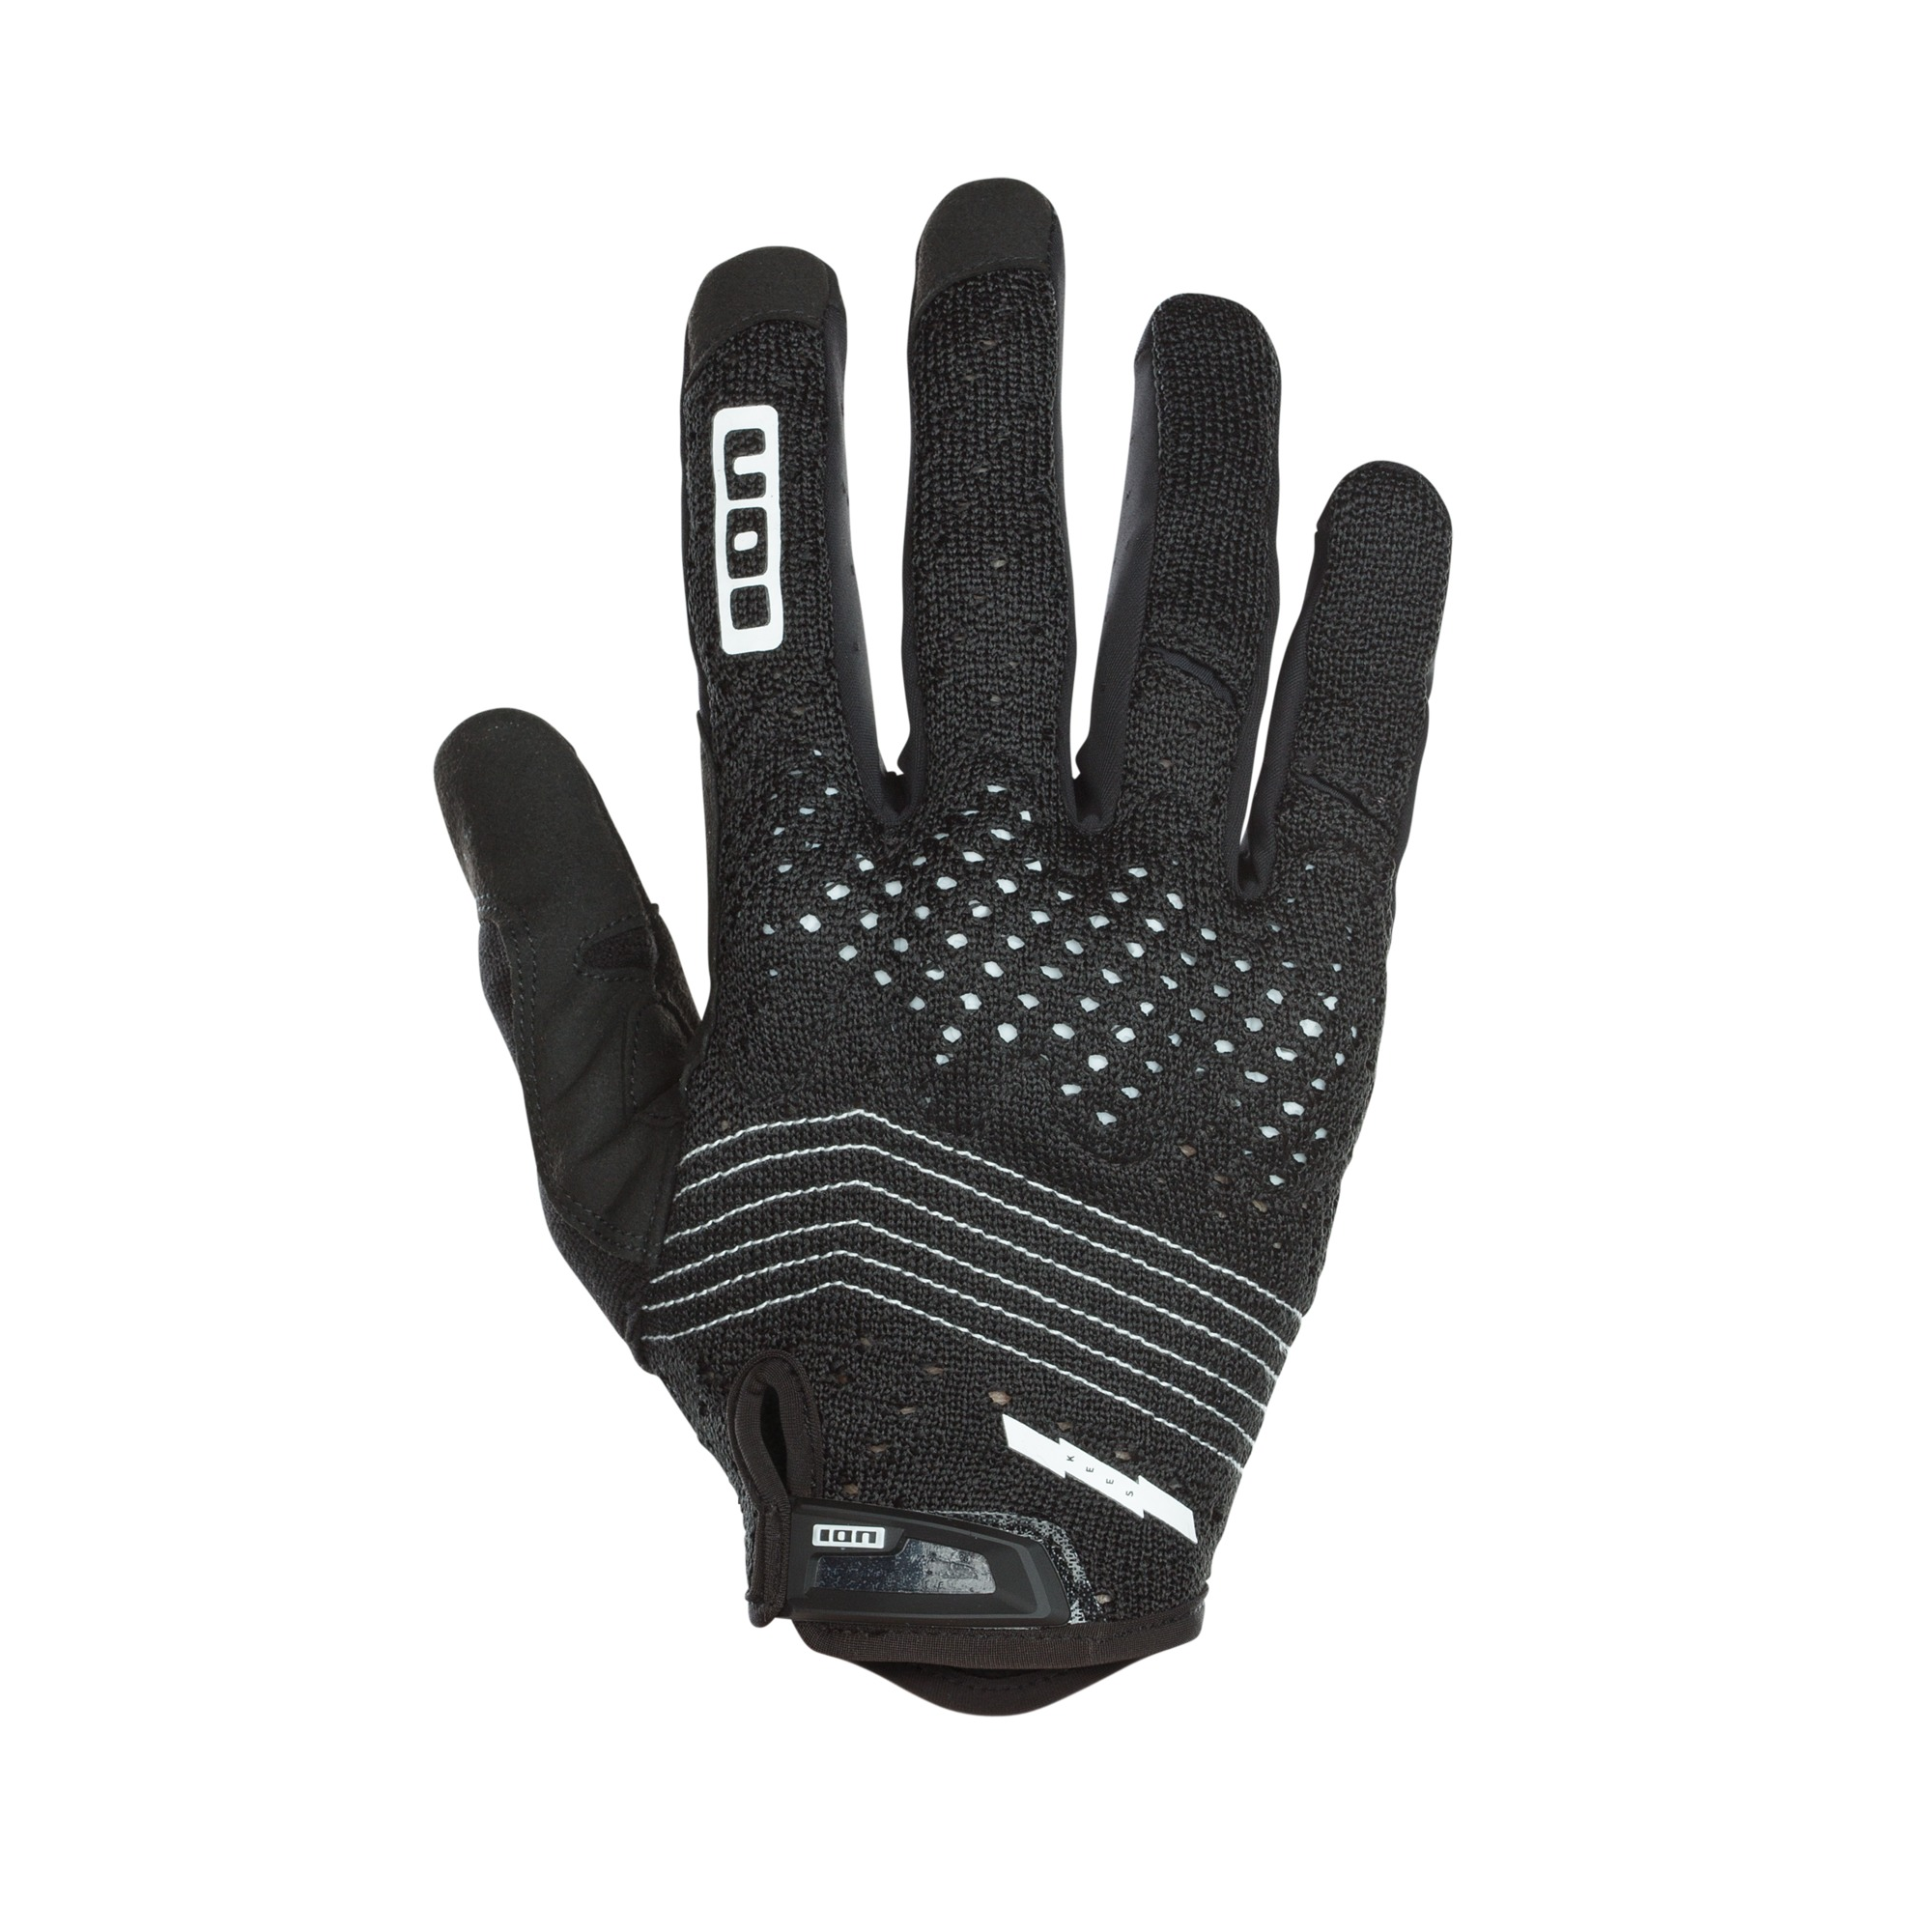 img_produse/ion_seek_amp_gloves_black_2019_1_399_22.02.19_3524.jpg